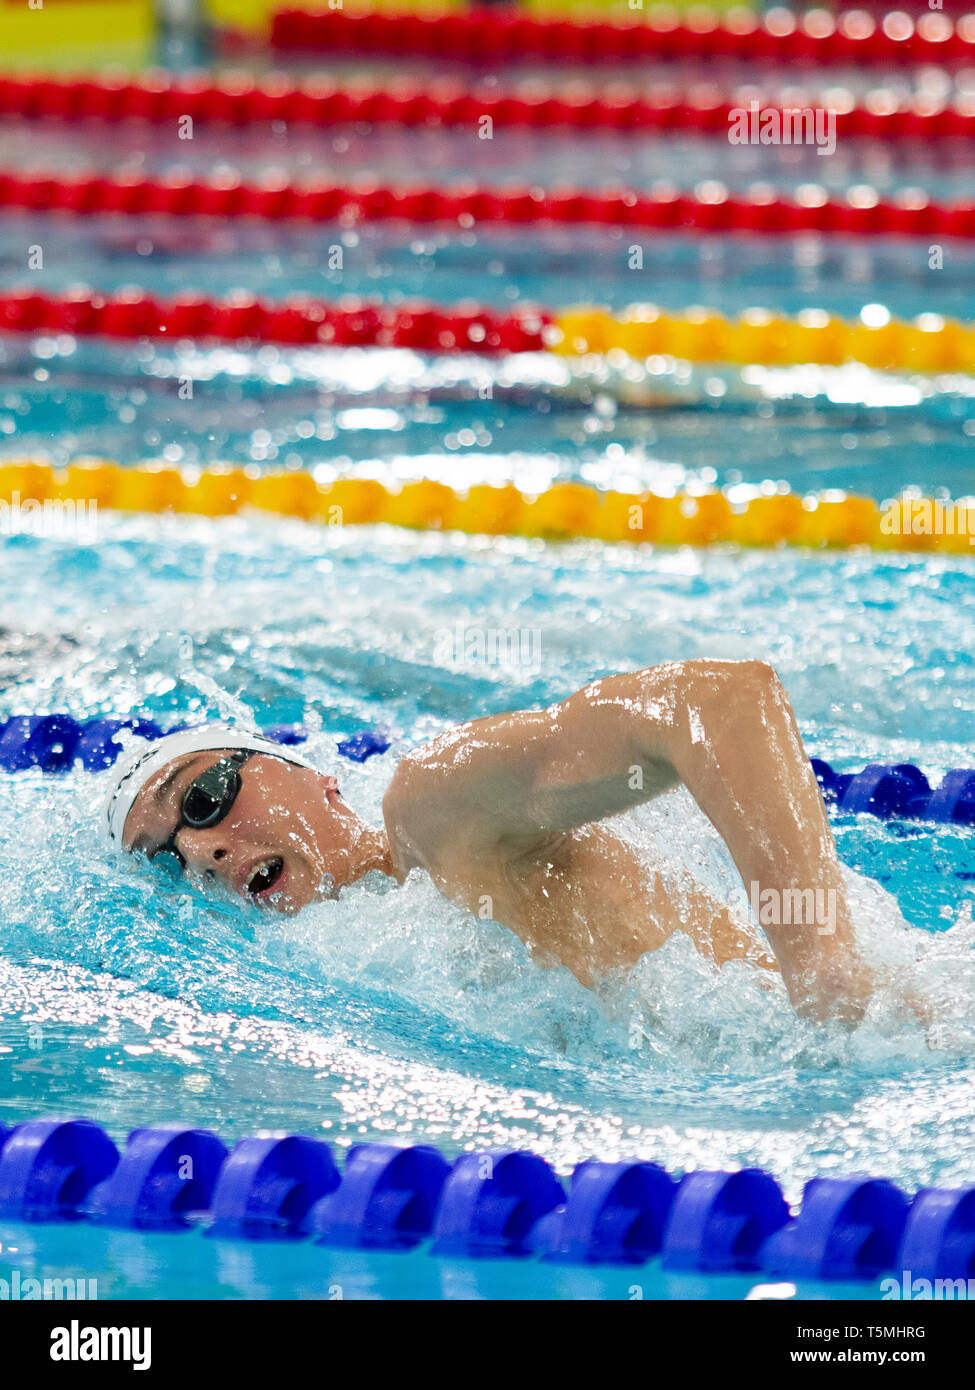 William Bell (City of Leicester) in action during the men's open 1,500 metres freestyle last heat, during Day 3 of the 2019 British Swimming Champions - Stock Image